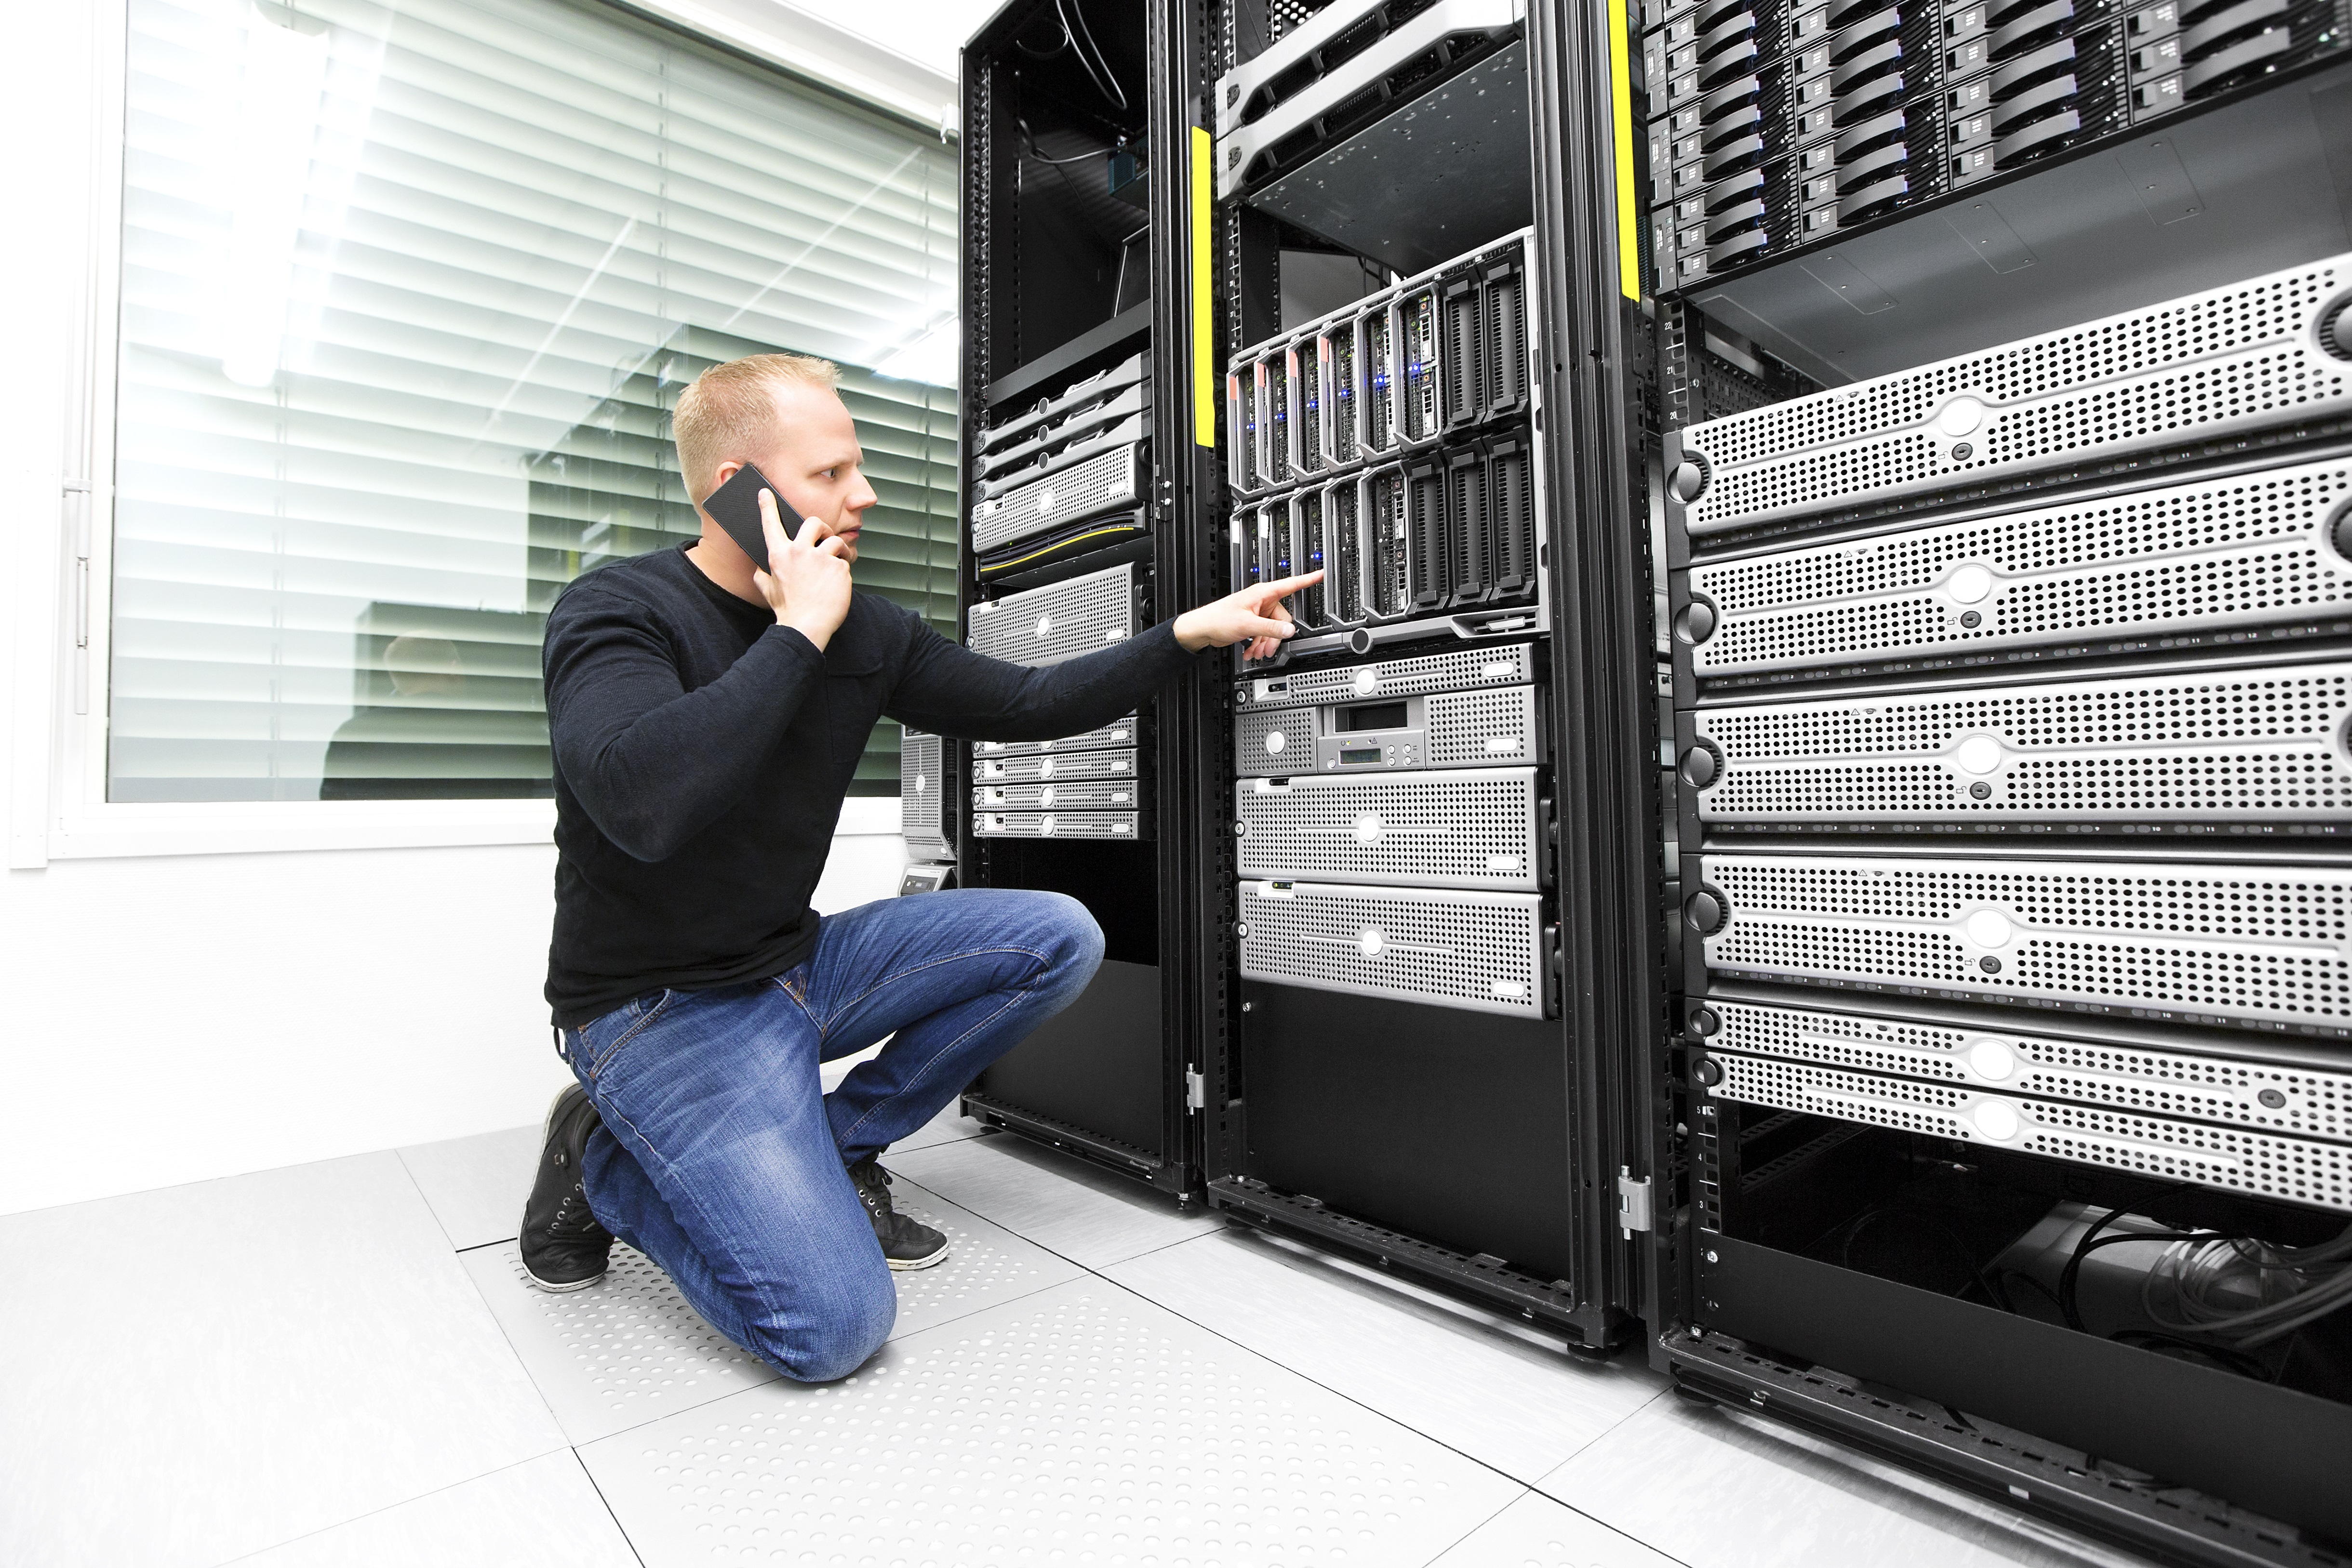 When should I replace my server?